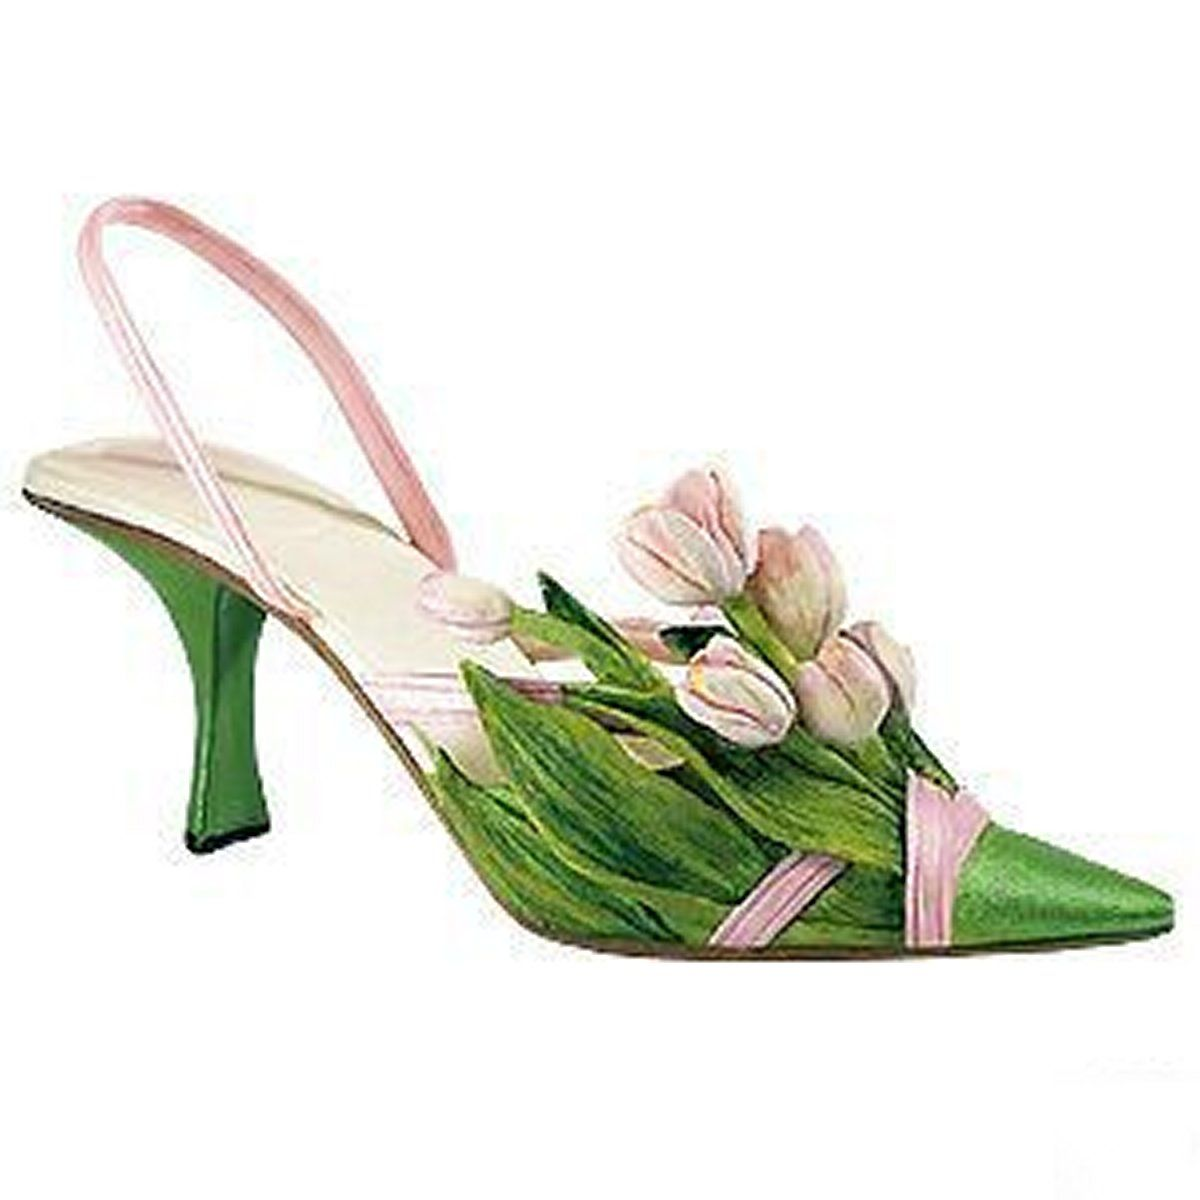 44035645426a Step into Nature Shoe (2003) Wedding Shoes